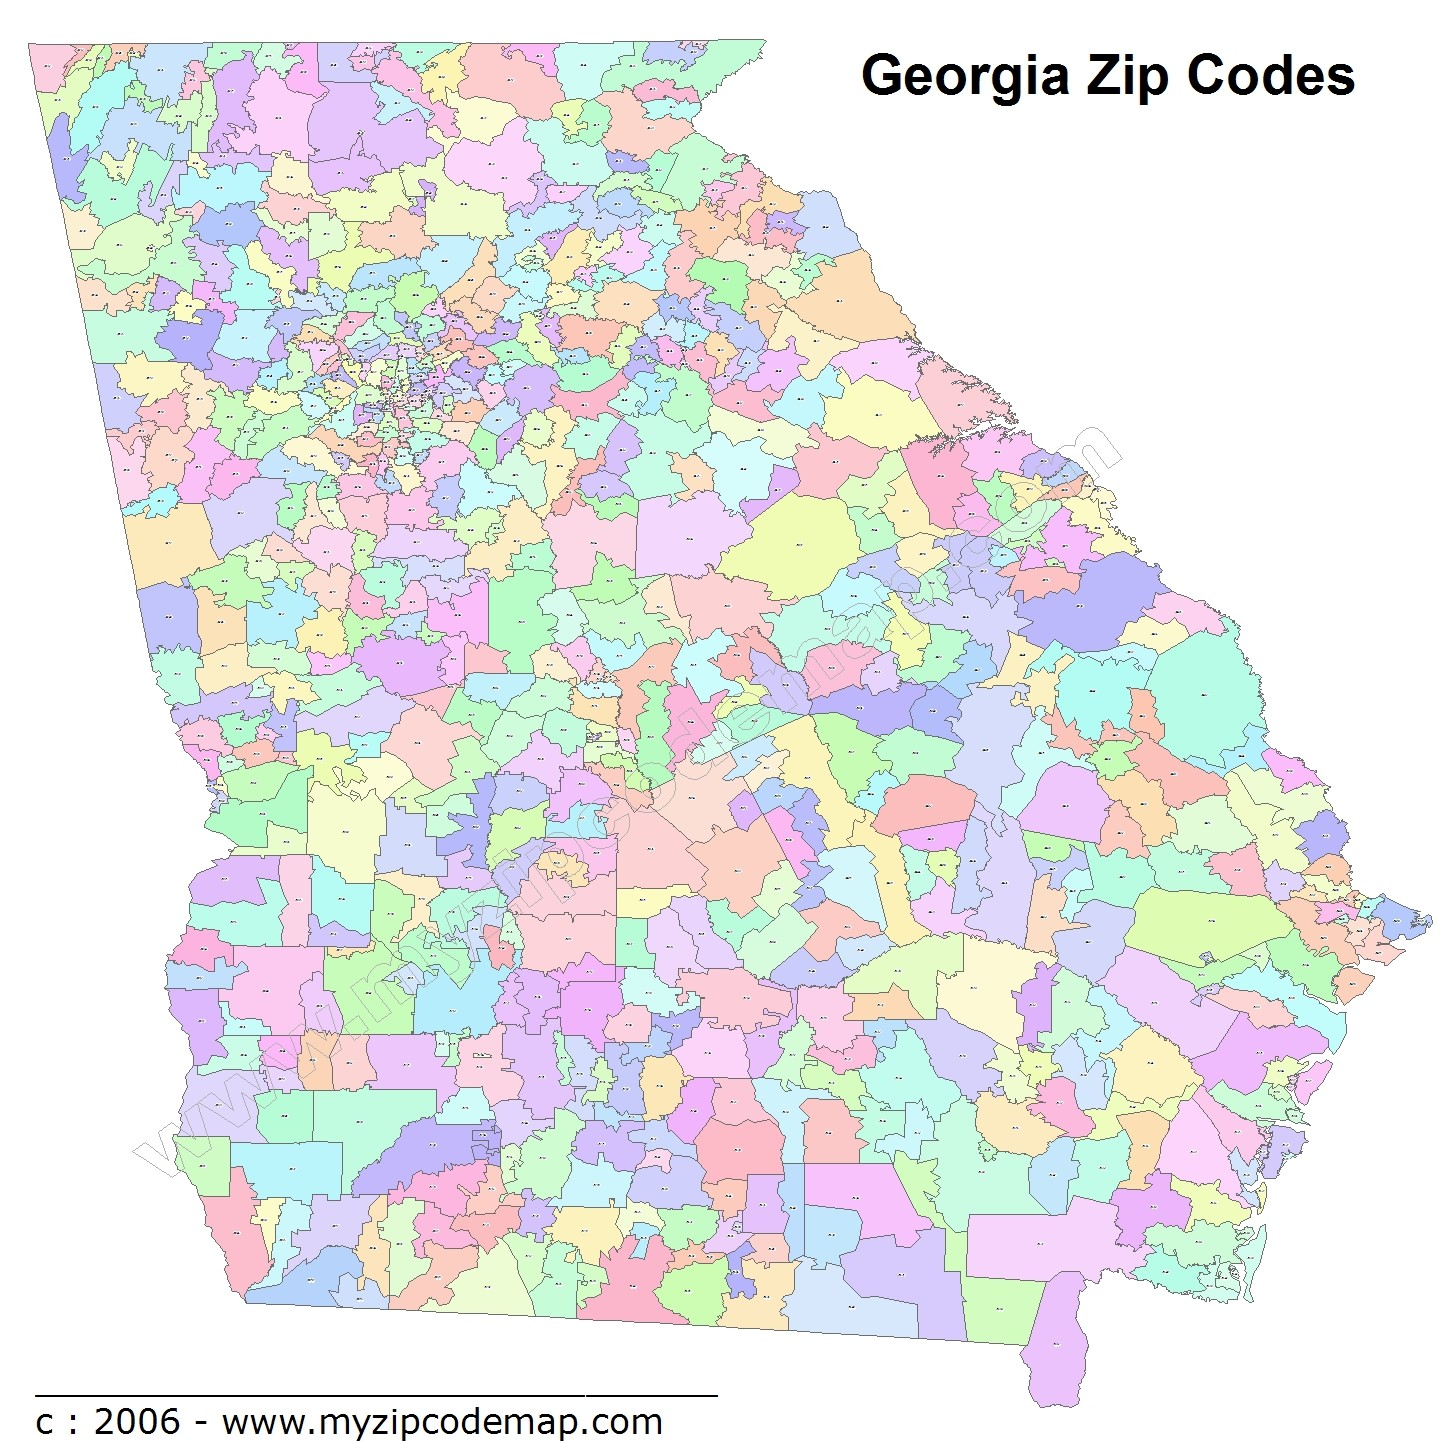 Georgia (GA) Zip Code Map